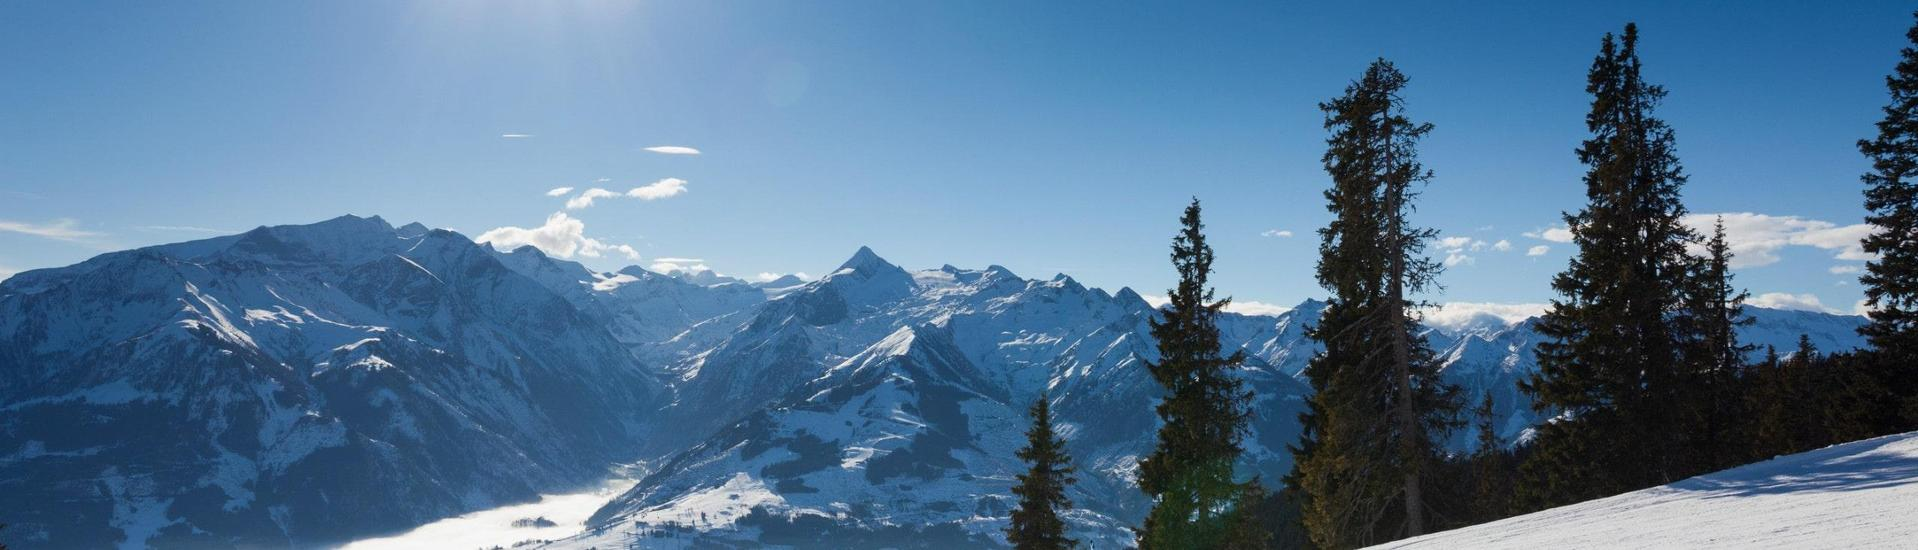 View over the sunny mountain landscape while learning to ski with the ski schools in Kaprun.